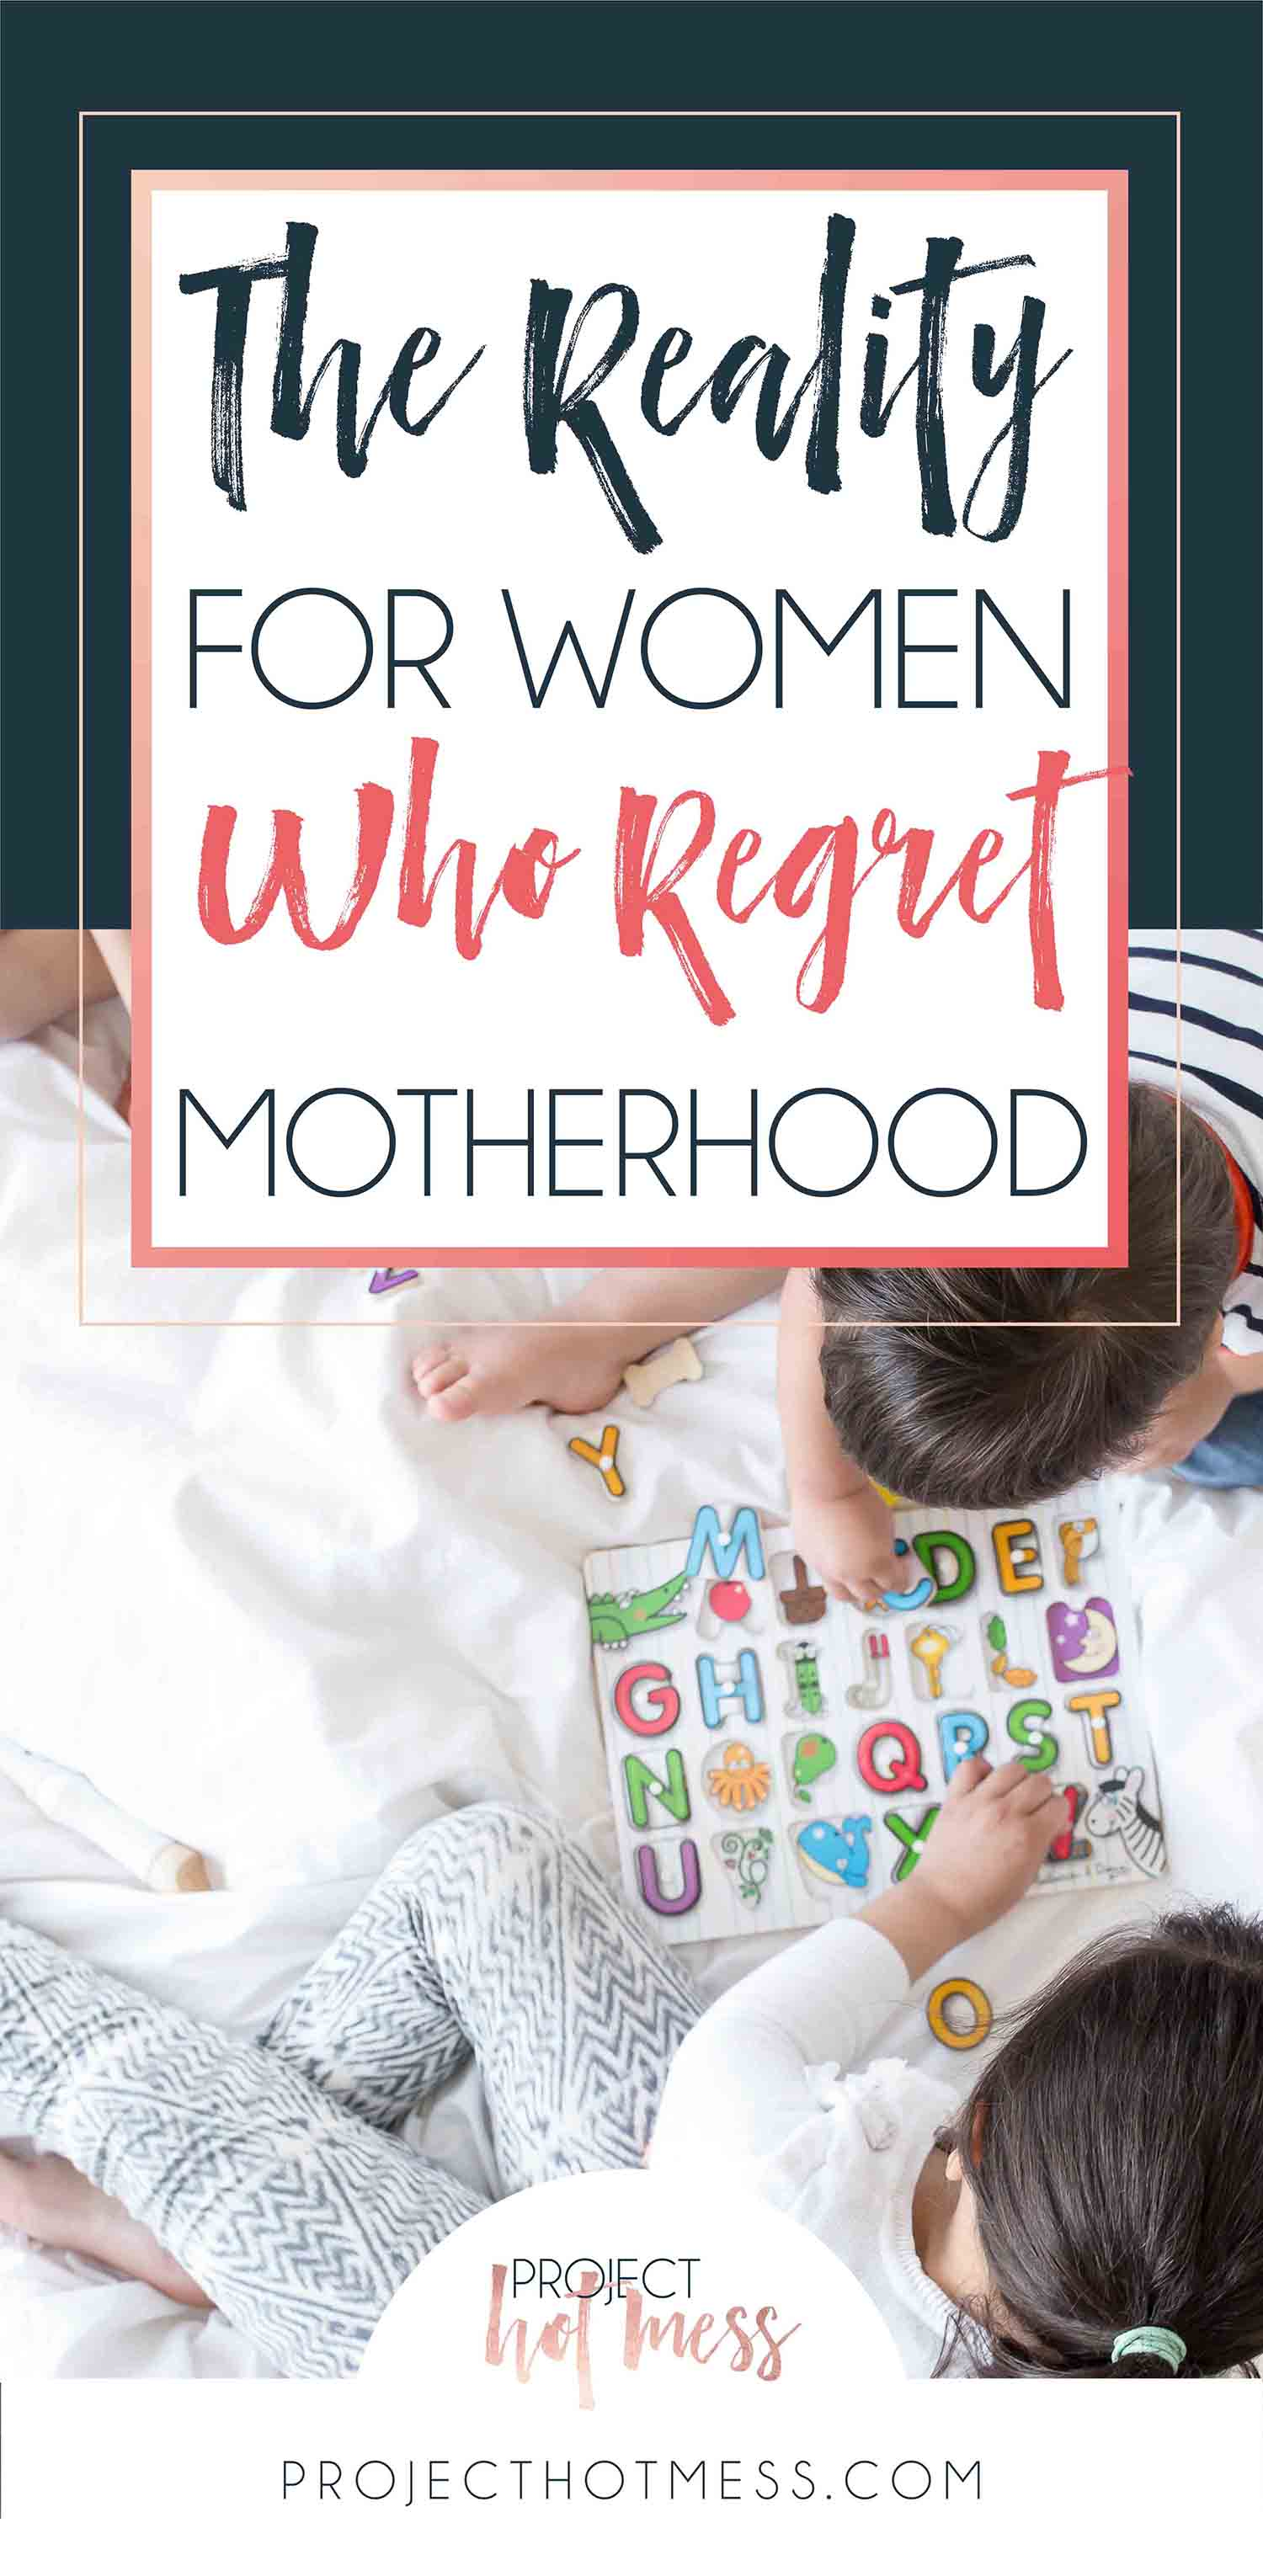 Motherhood doesn't come easy for many women, and for some it just doesn't fit at all. The reality is, there are women who regret motherhood and that's okay! These women need our support, not our criticism. This is why.